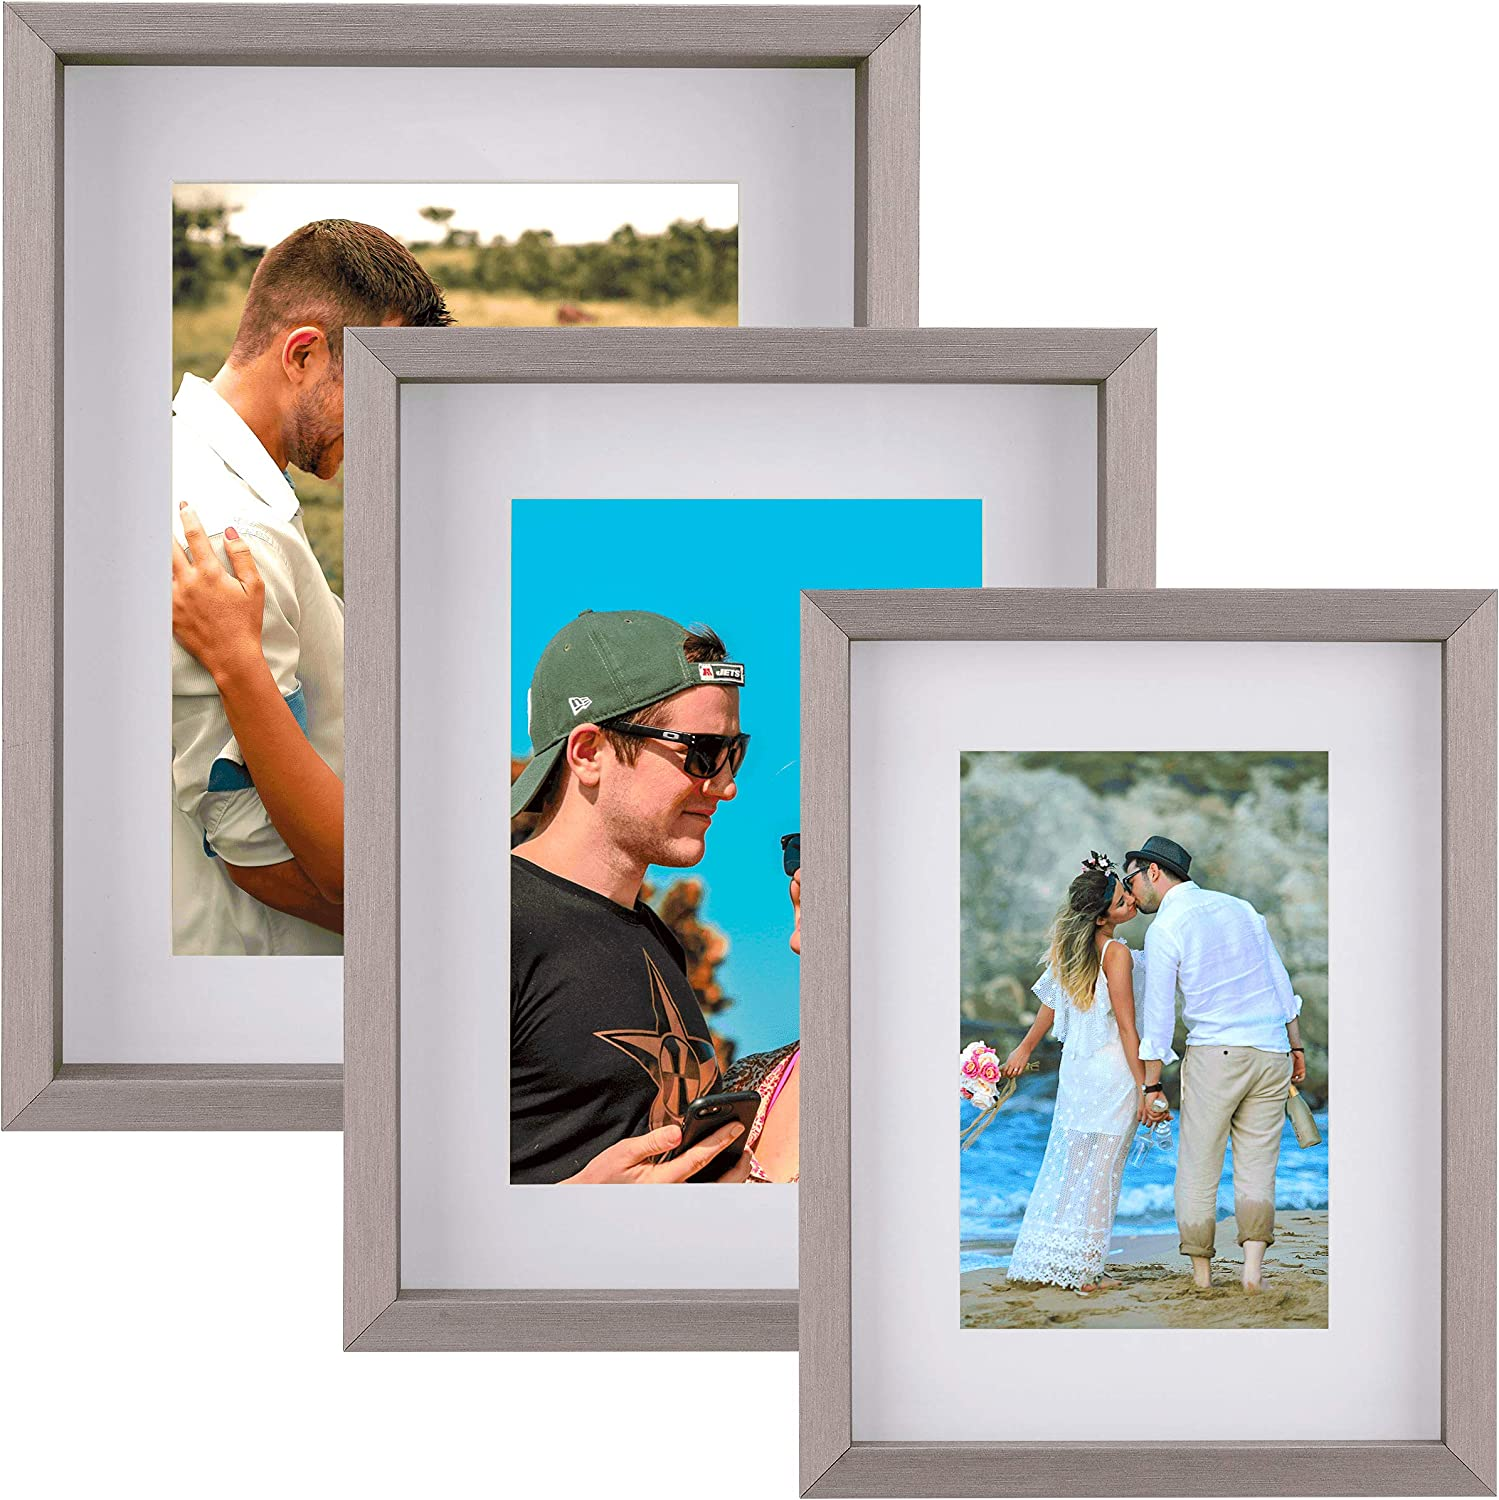 Picture Frames Metallic Silver Collage Set of 3 – Display Pictures 4x6, 5x7 & 6x8 with Mat or 6x8, 7x9 & 8x10 without Mat – Wood Tabletop & Wall Mount Photo Frames Set for Kitchen Gallery decor